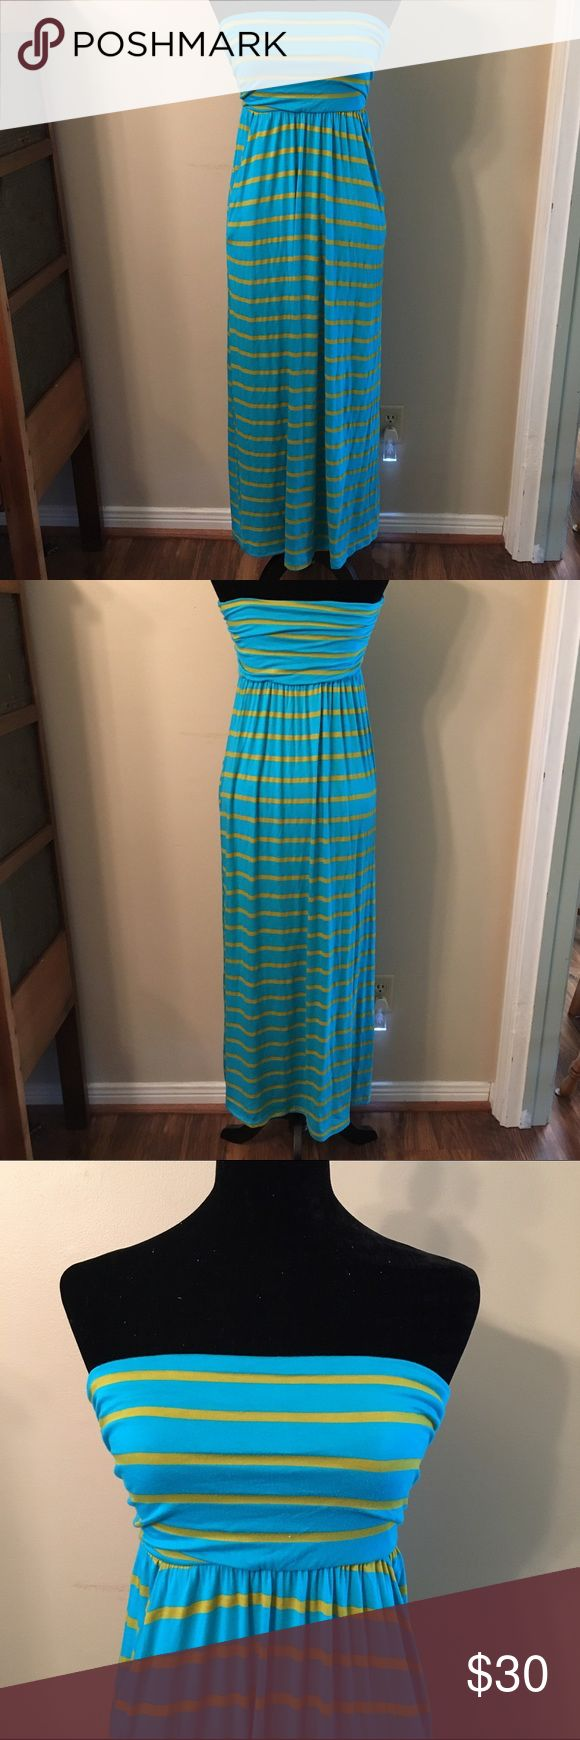 Women's maxi dress Strapless maxi dress, elastic waistband, two pockets (one on each side). Perfect summer dress! Dress it up or down for any occasion Apricot Lane Boutique Dresses Strapless